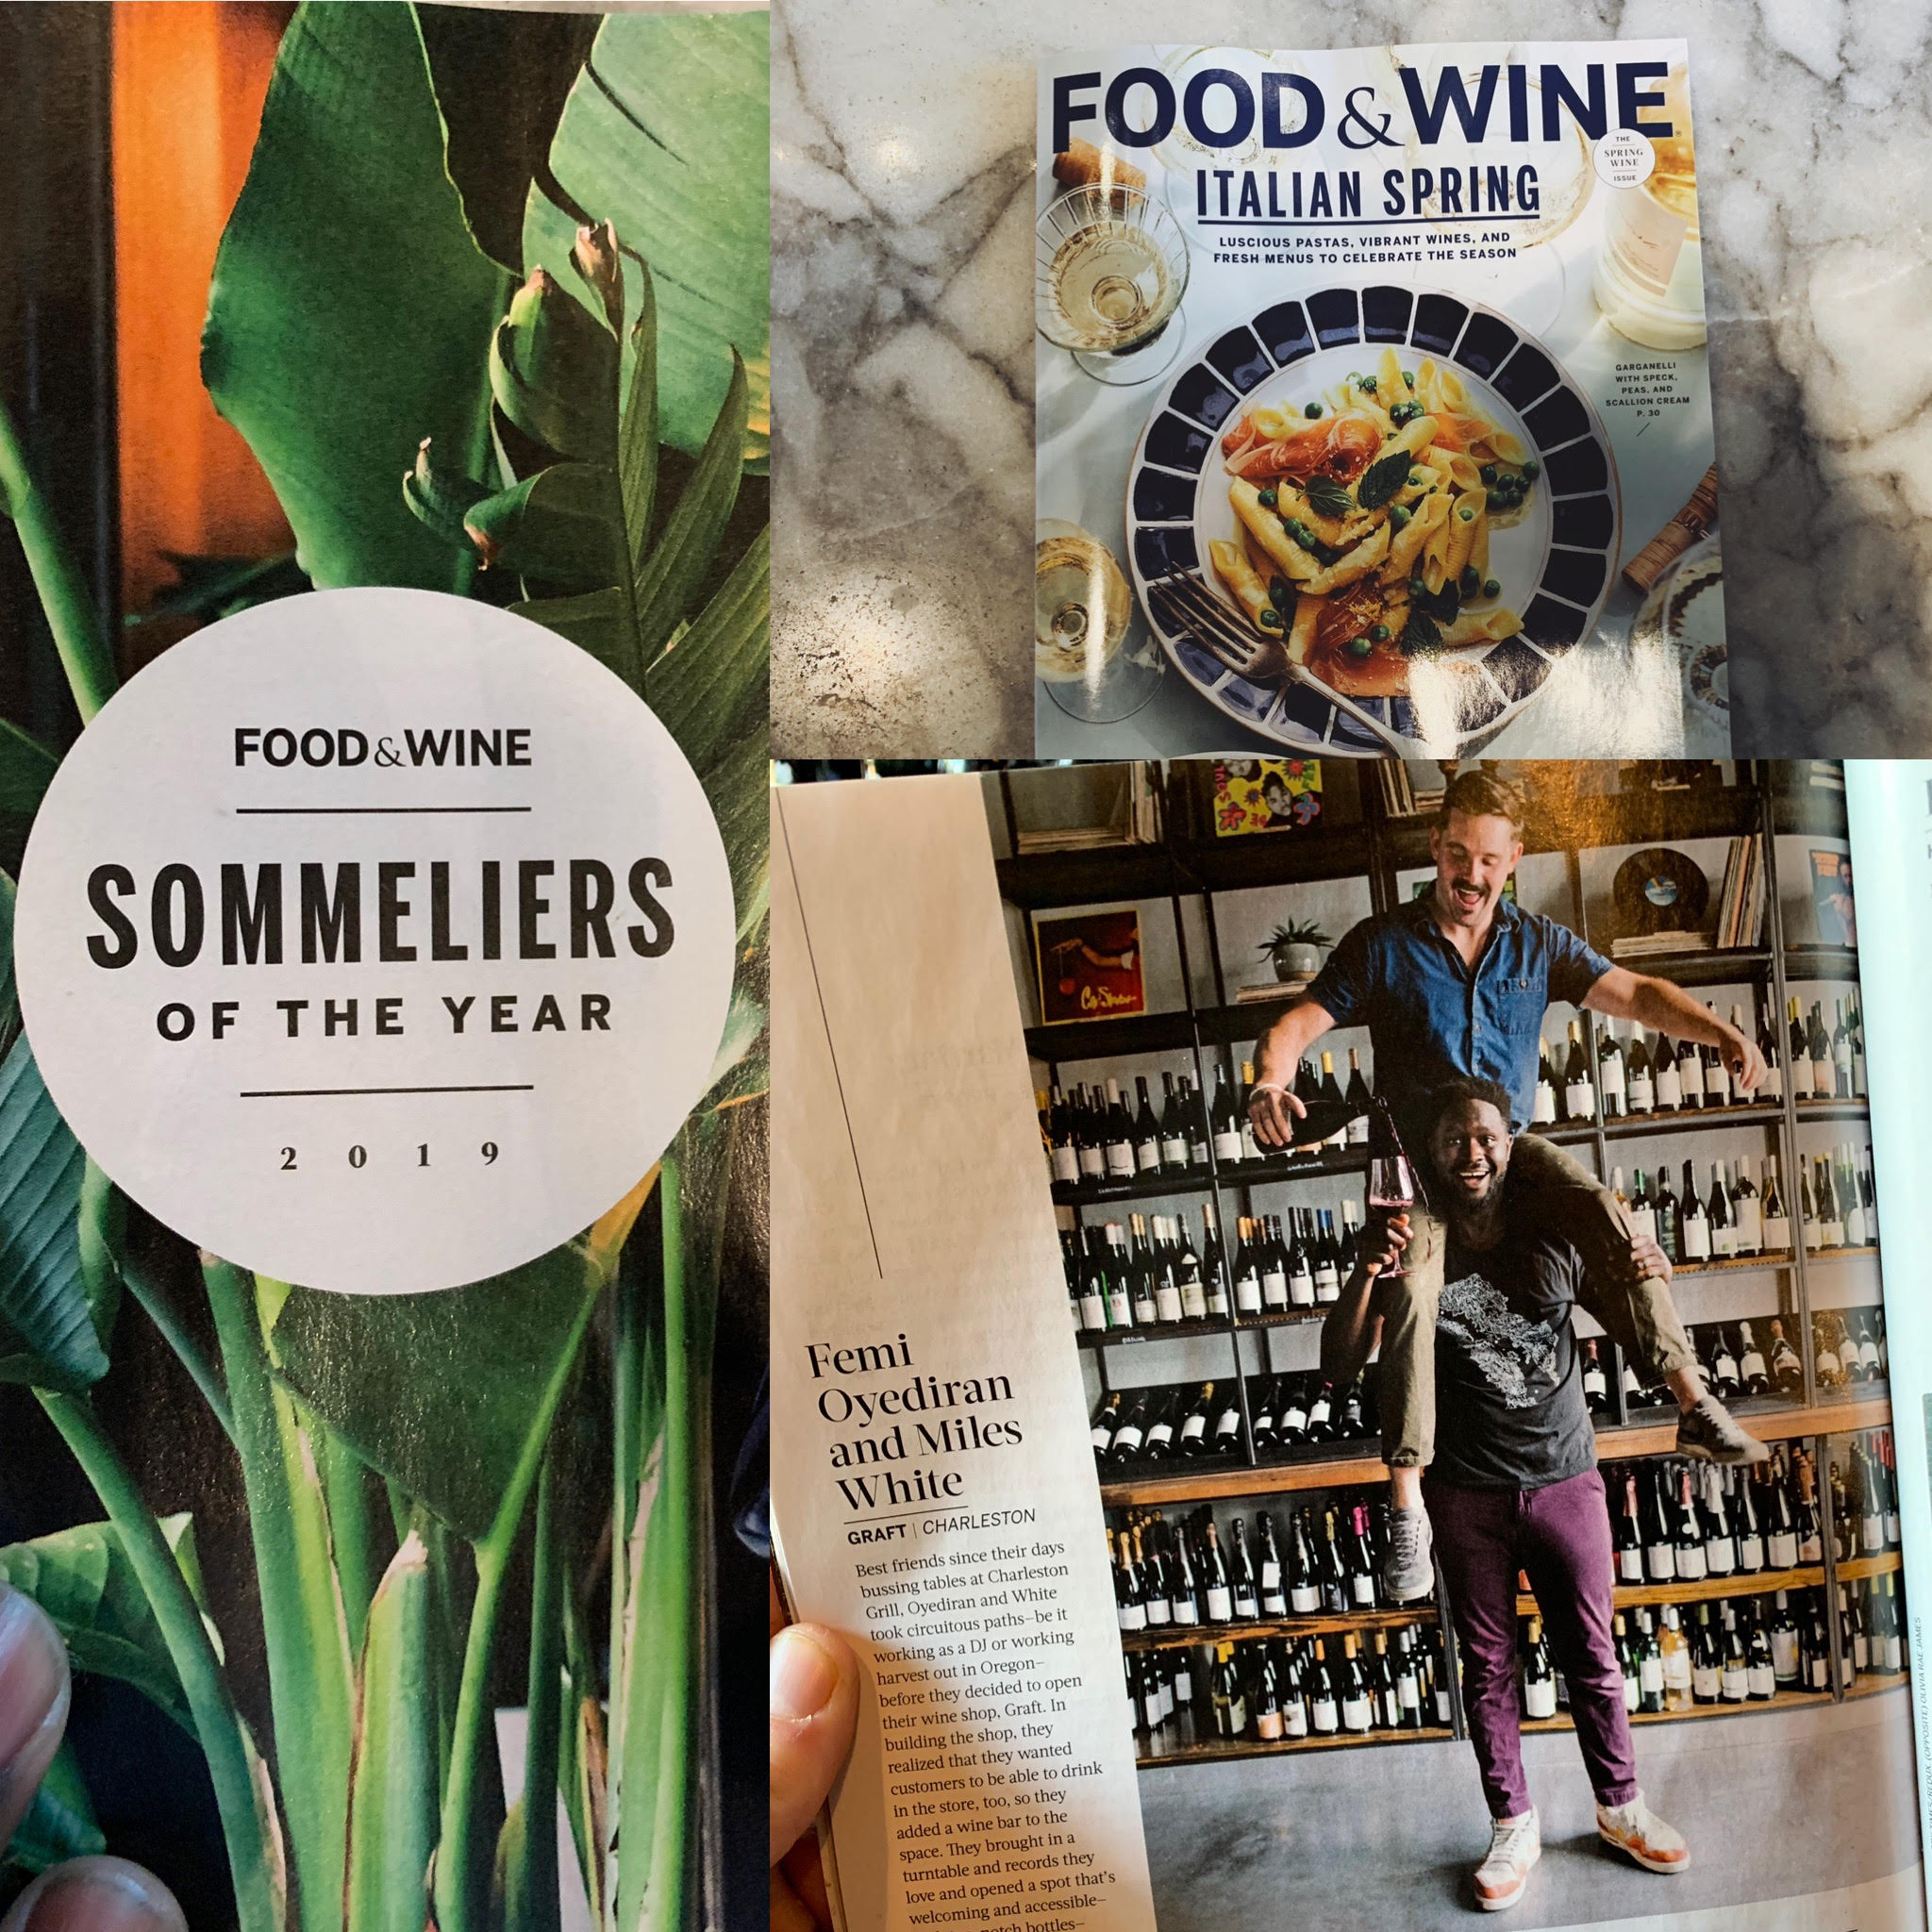 Food and Wine Magazine - 2019 Sommeliers of the Year